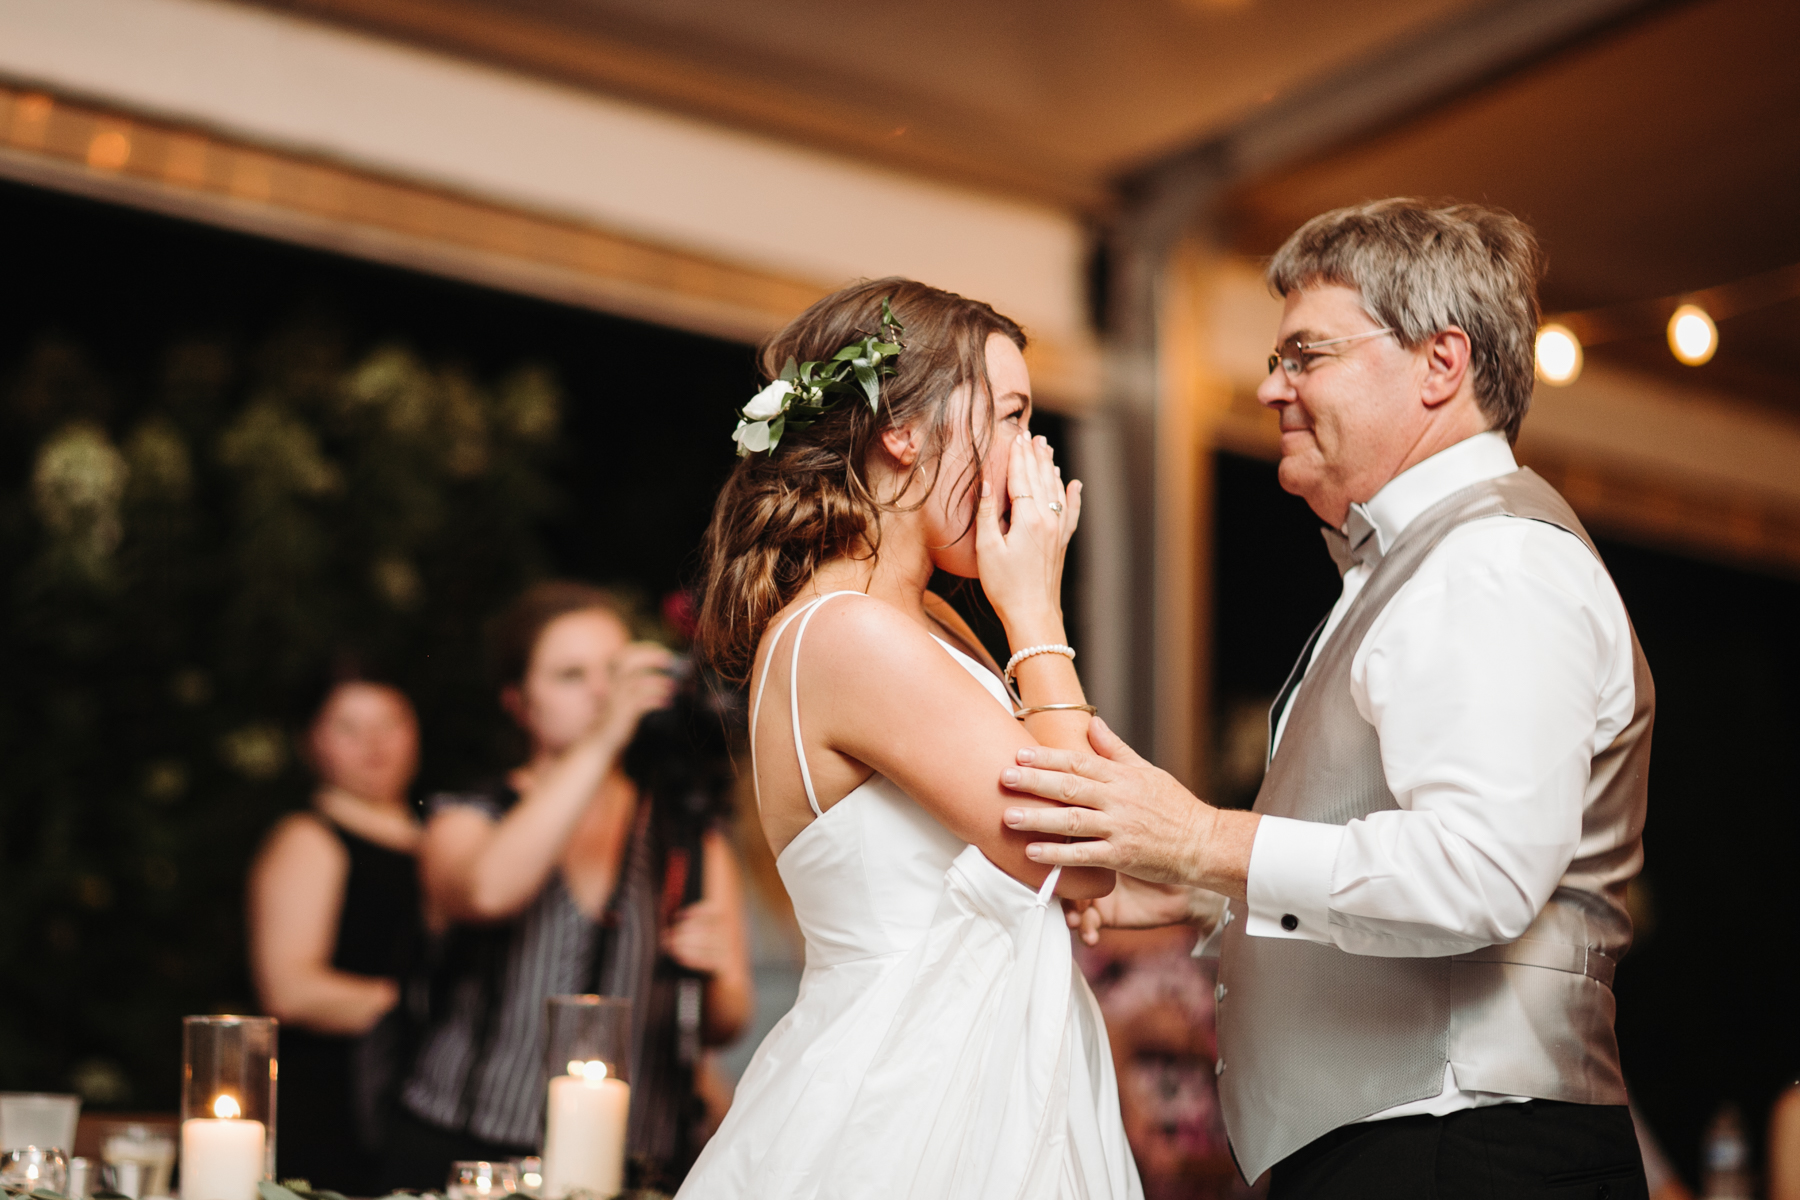 father daughter dance at a Sunny summer wedding at Dara's Garden in Knoxville, Tennessee